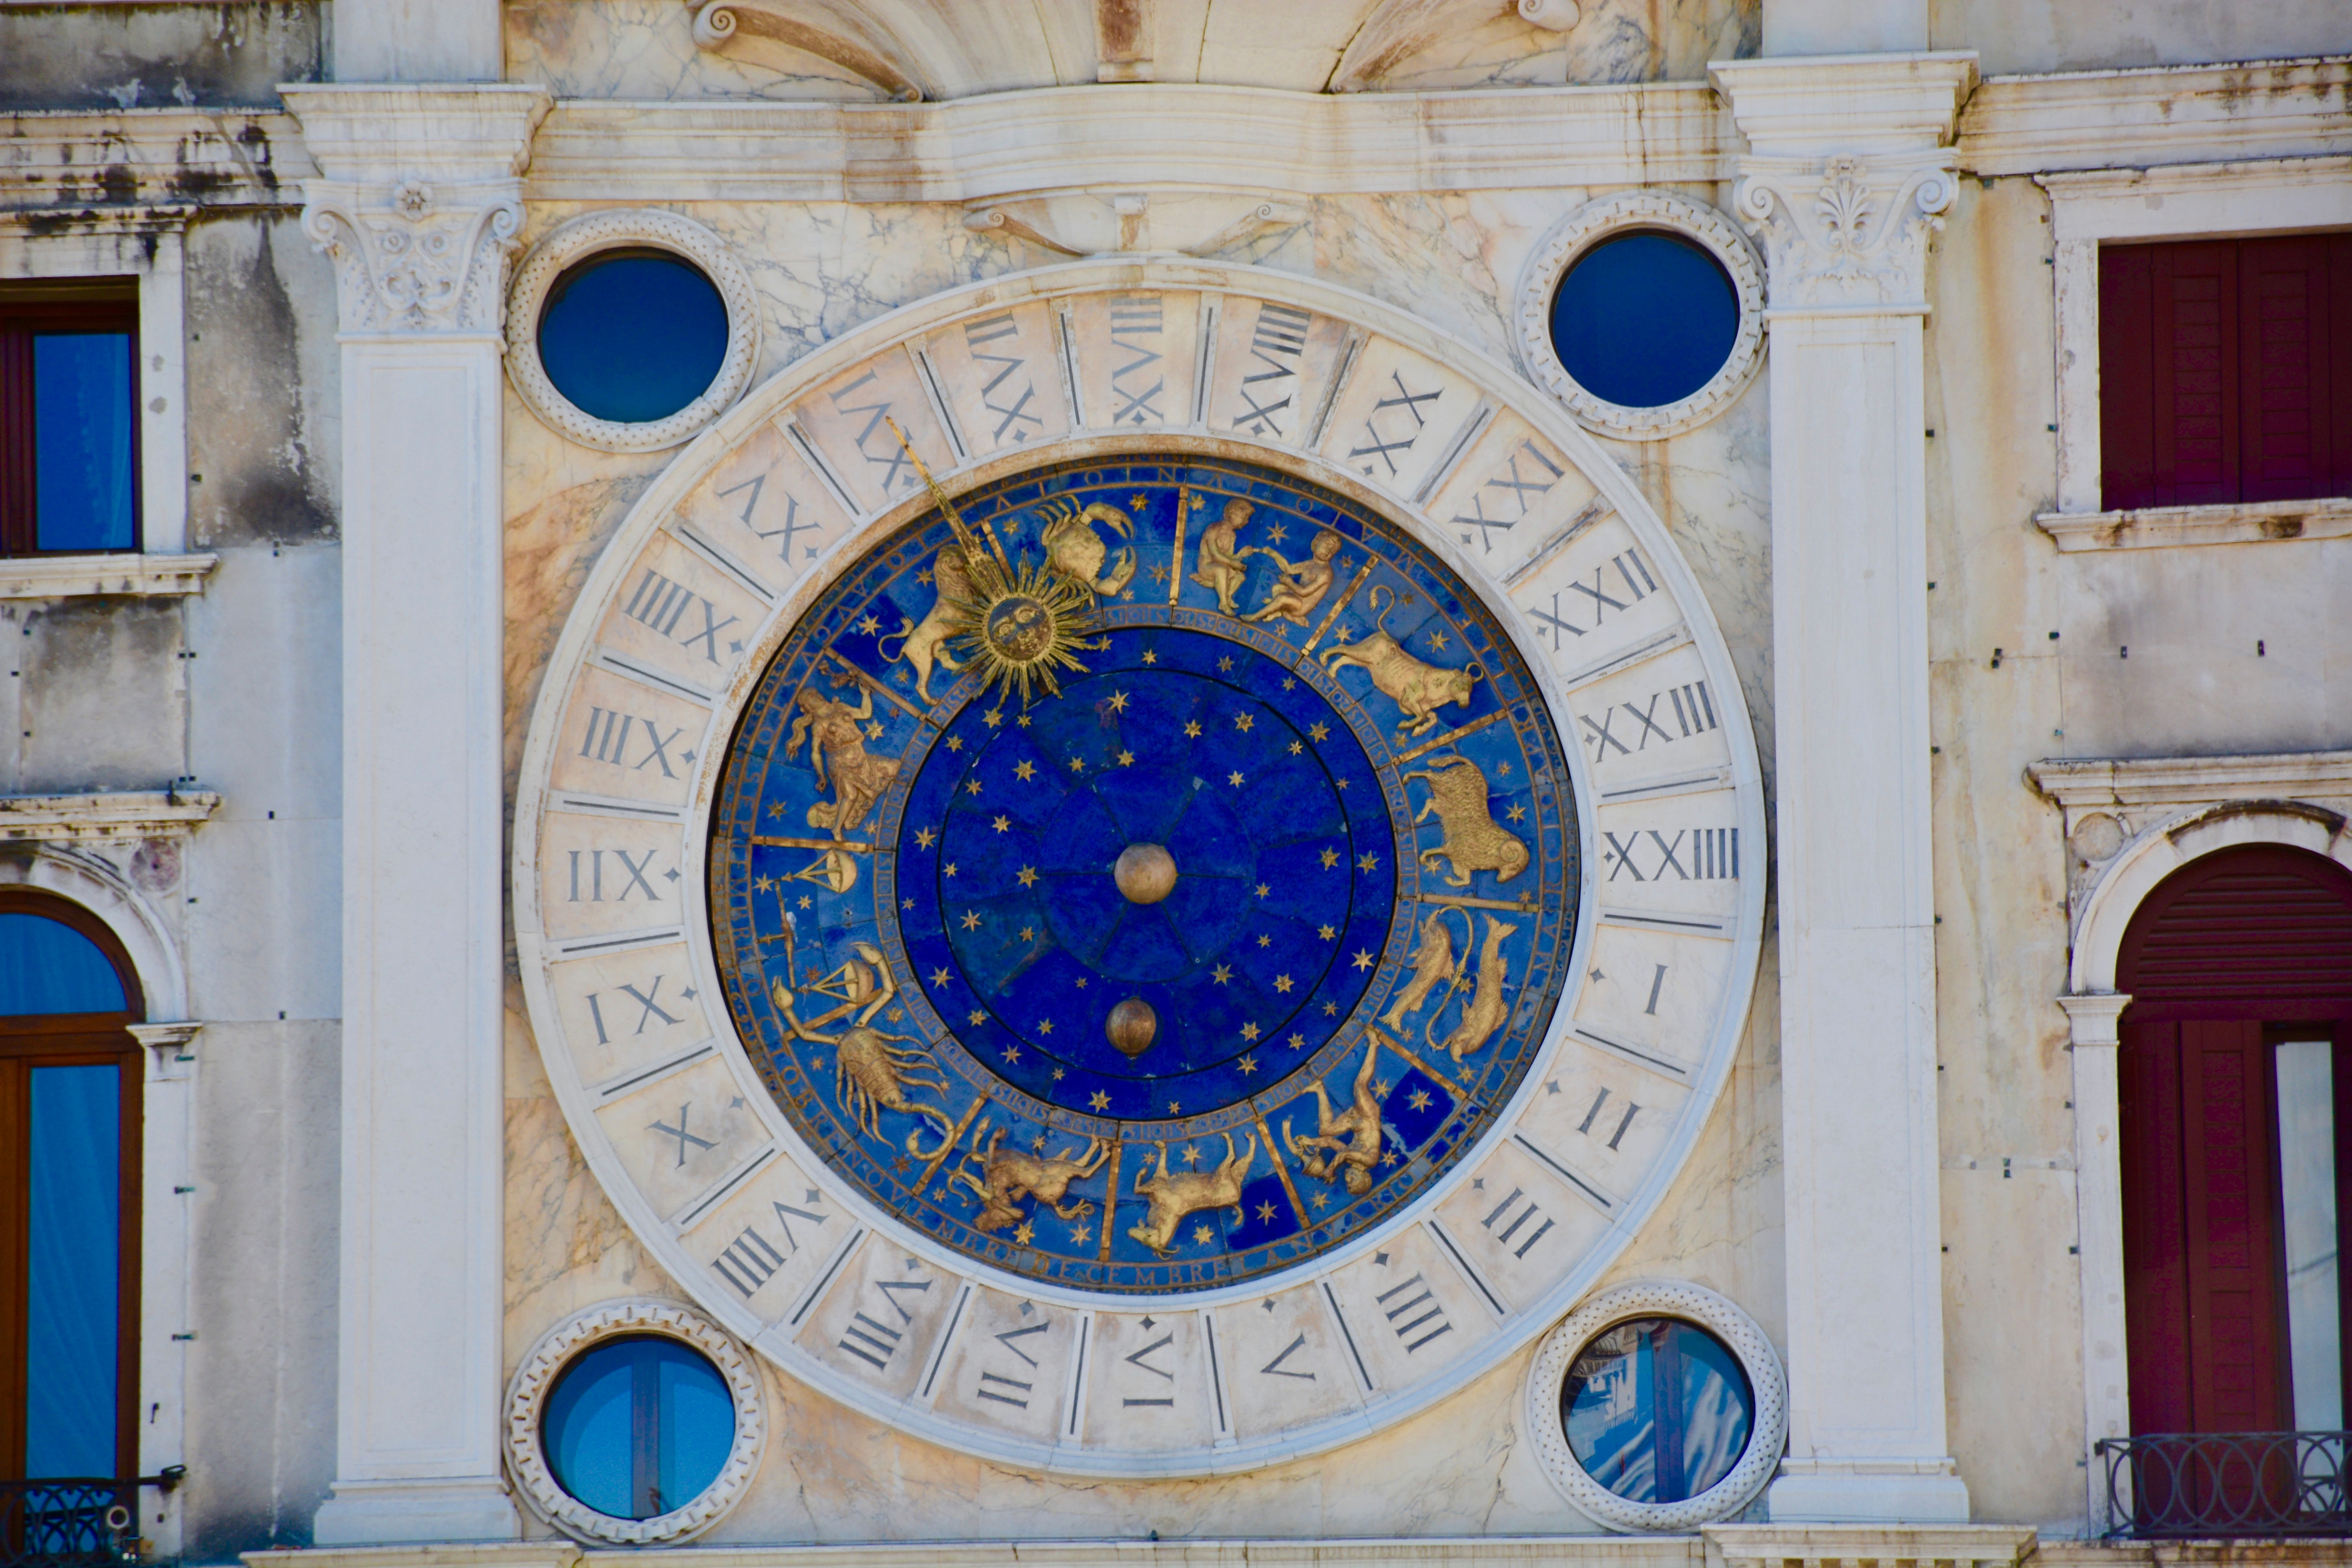 Audio from Podcasts on Astrology for All 12 Signs